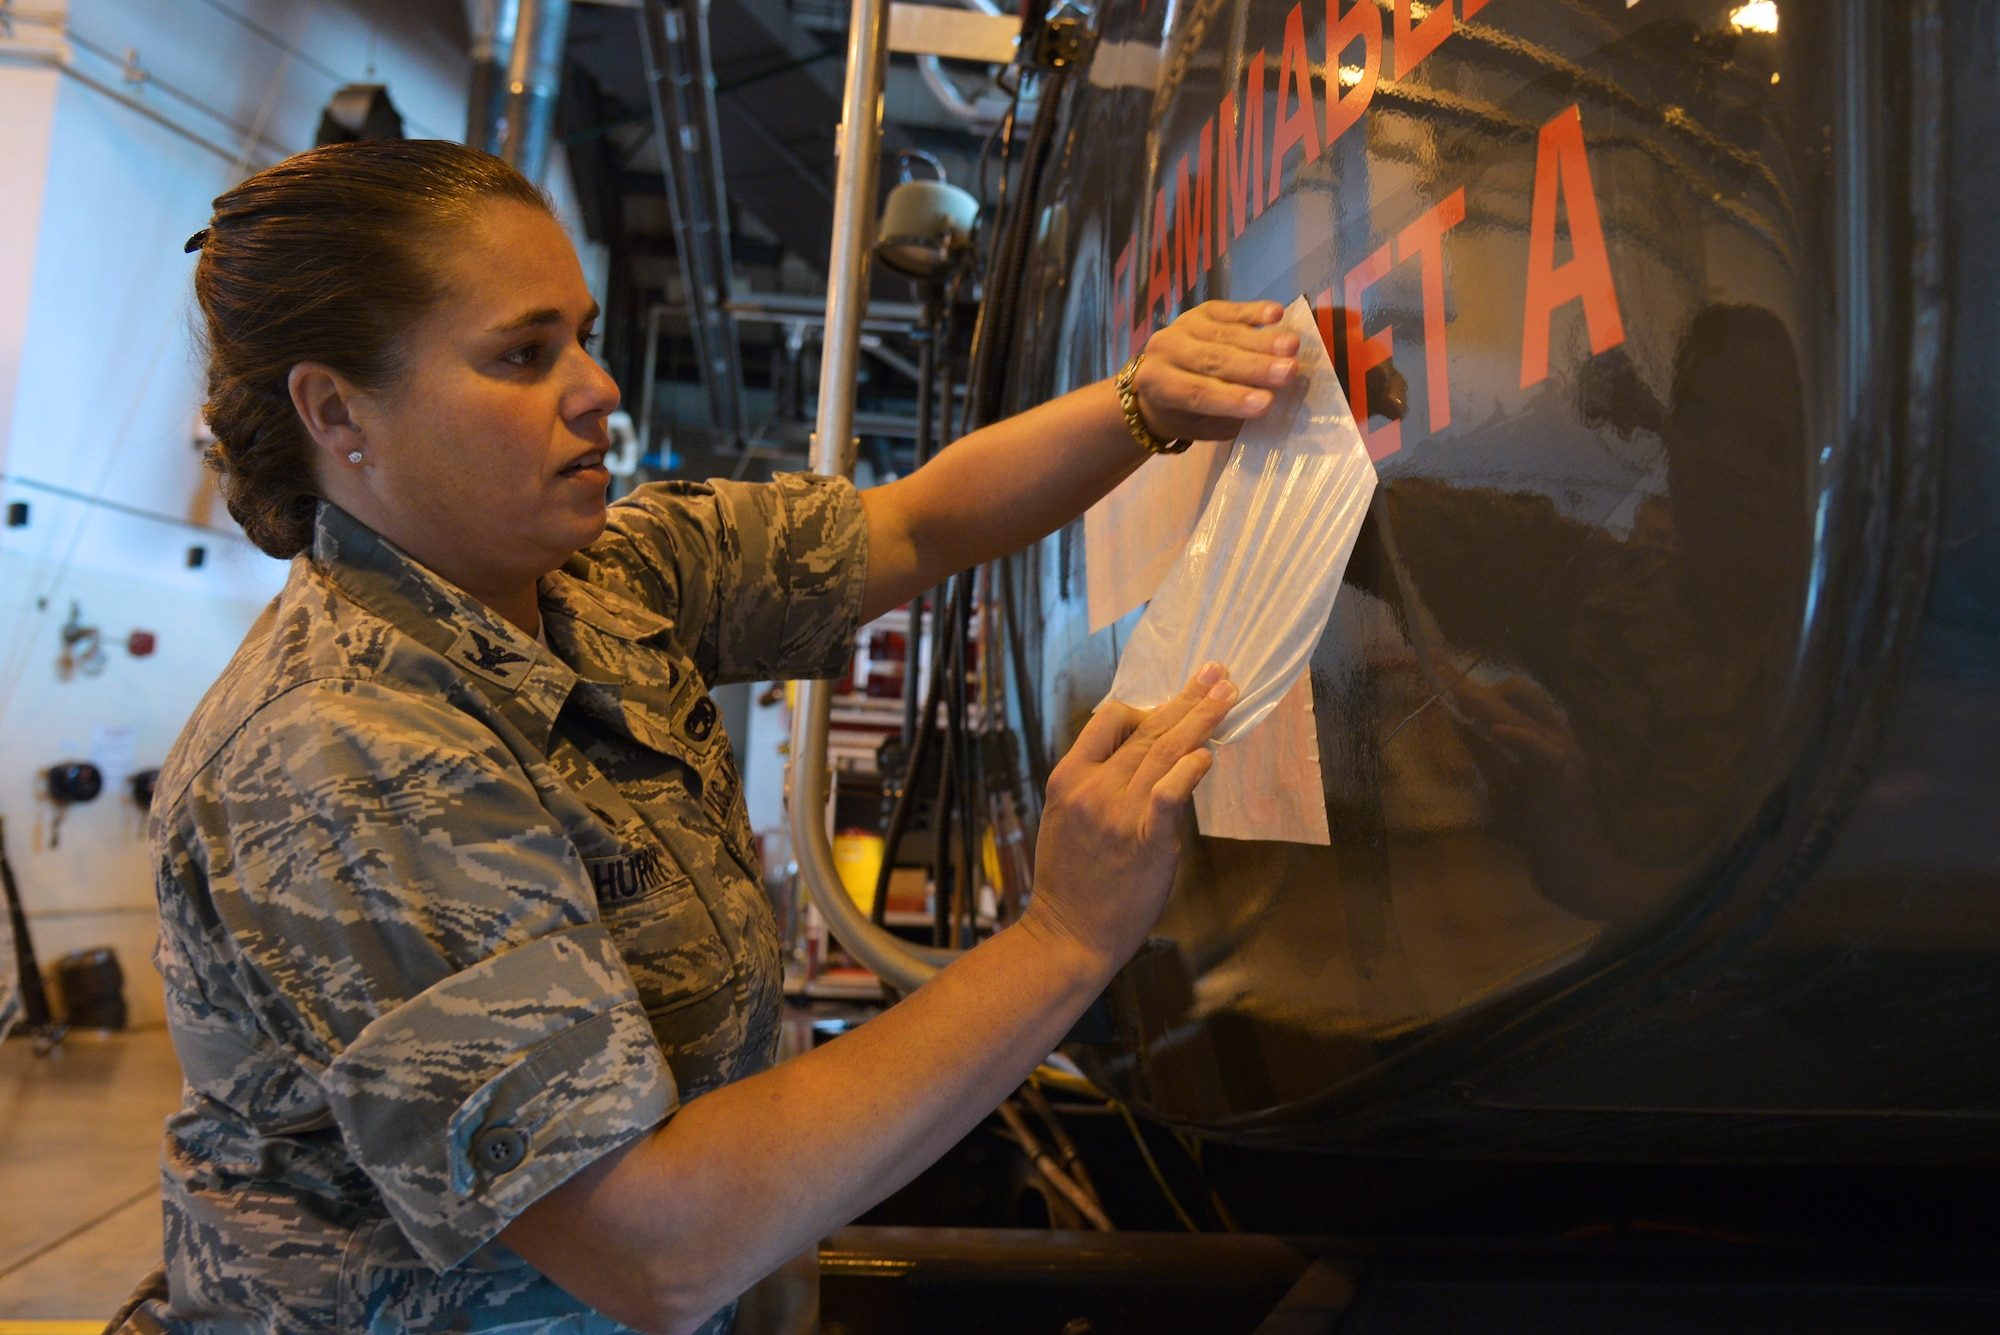 Col. Linda Hurry applies the Jet A1 fuel sticker on an R11 refueler as part of the conversion from JP8 fuel to Jet A1 fuel Oct. 15, 2014, Scott Air Force Base, Ill. Jet A1 fuel was created as a cost savings measure by the Department of Defense and will save approximately $40 million dollars annually. Hurry is the 635th Supply Chain Operations Wing commander. (U.S. Air Force photo/Tech Sgt. Christopher Boitz)